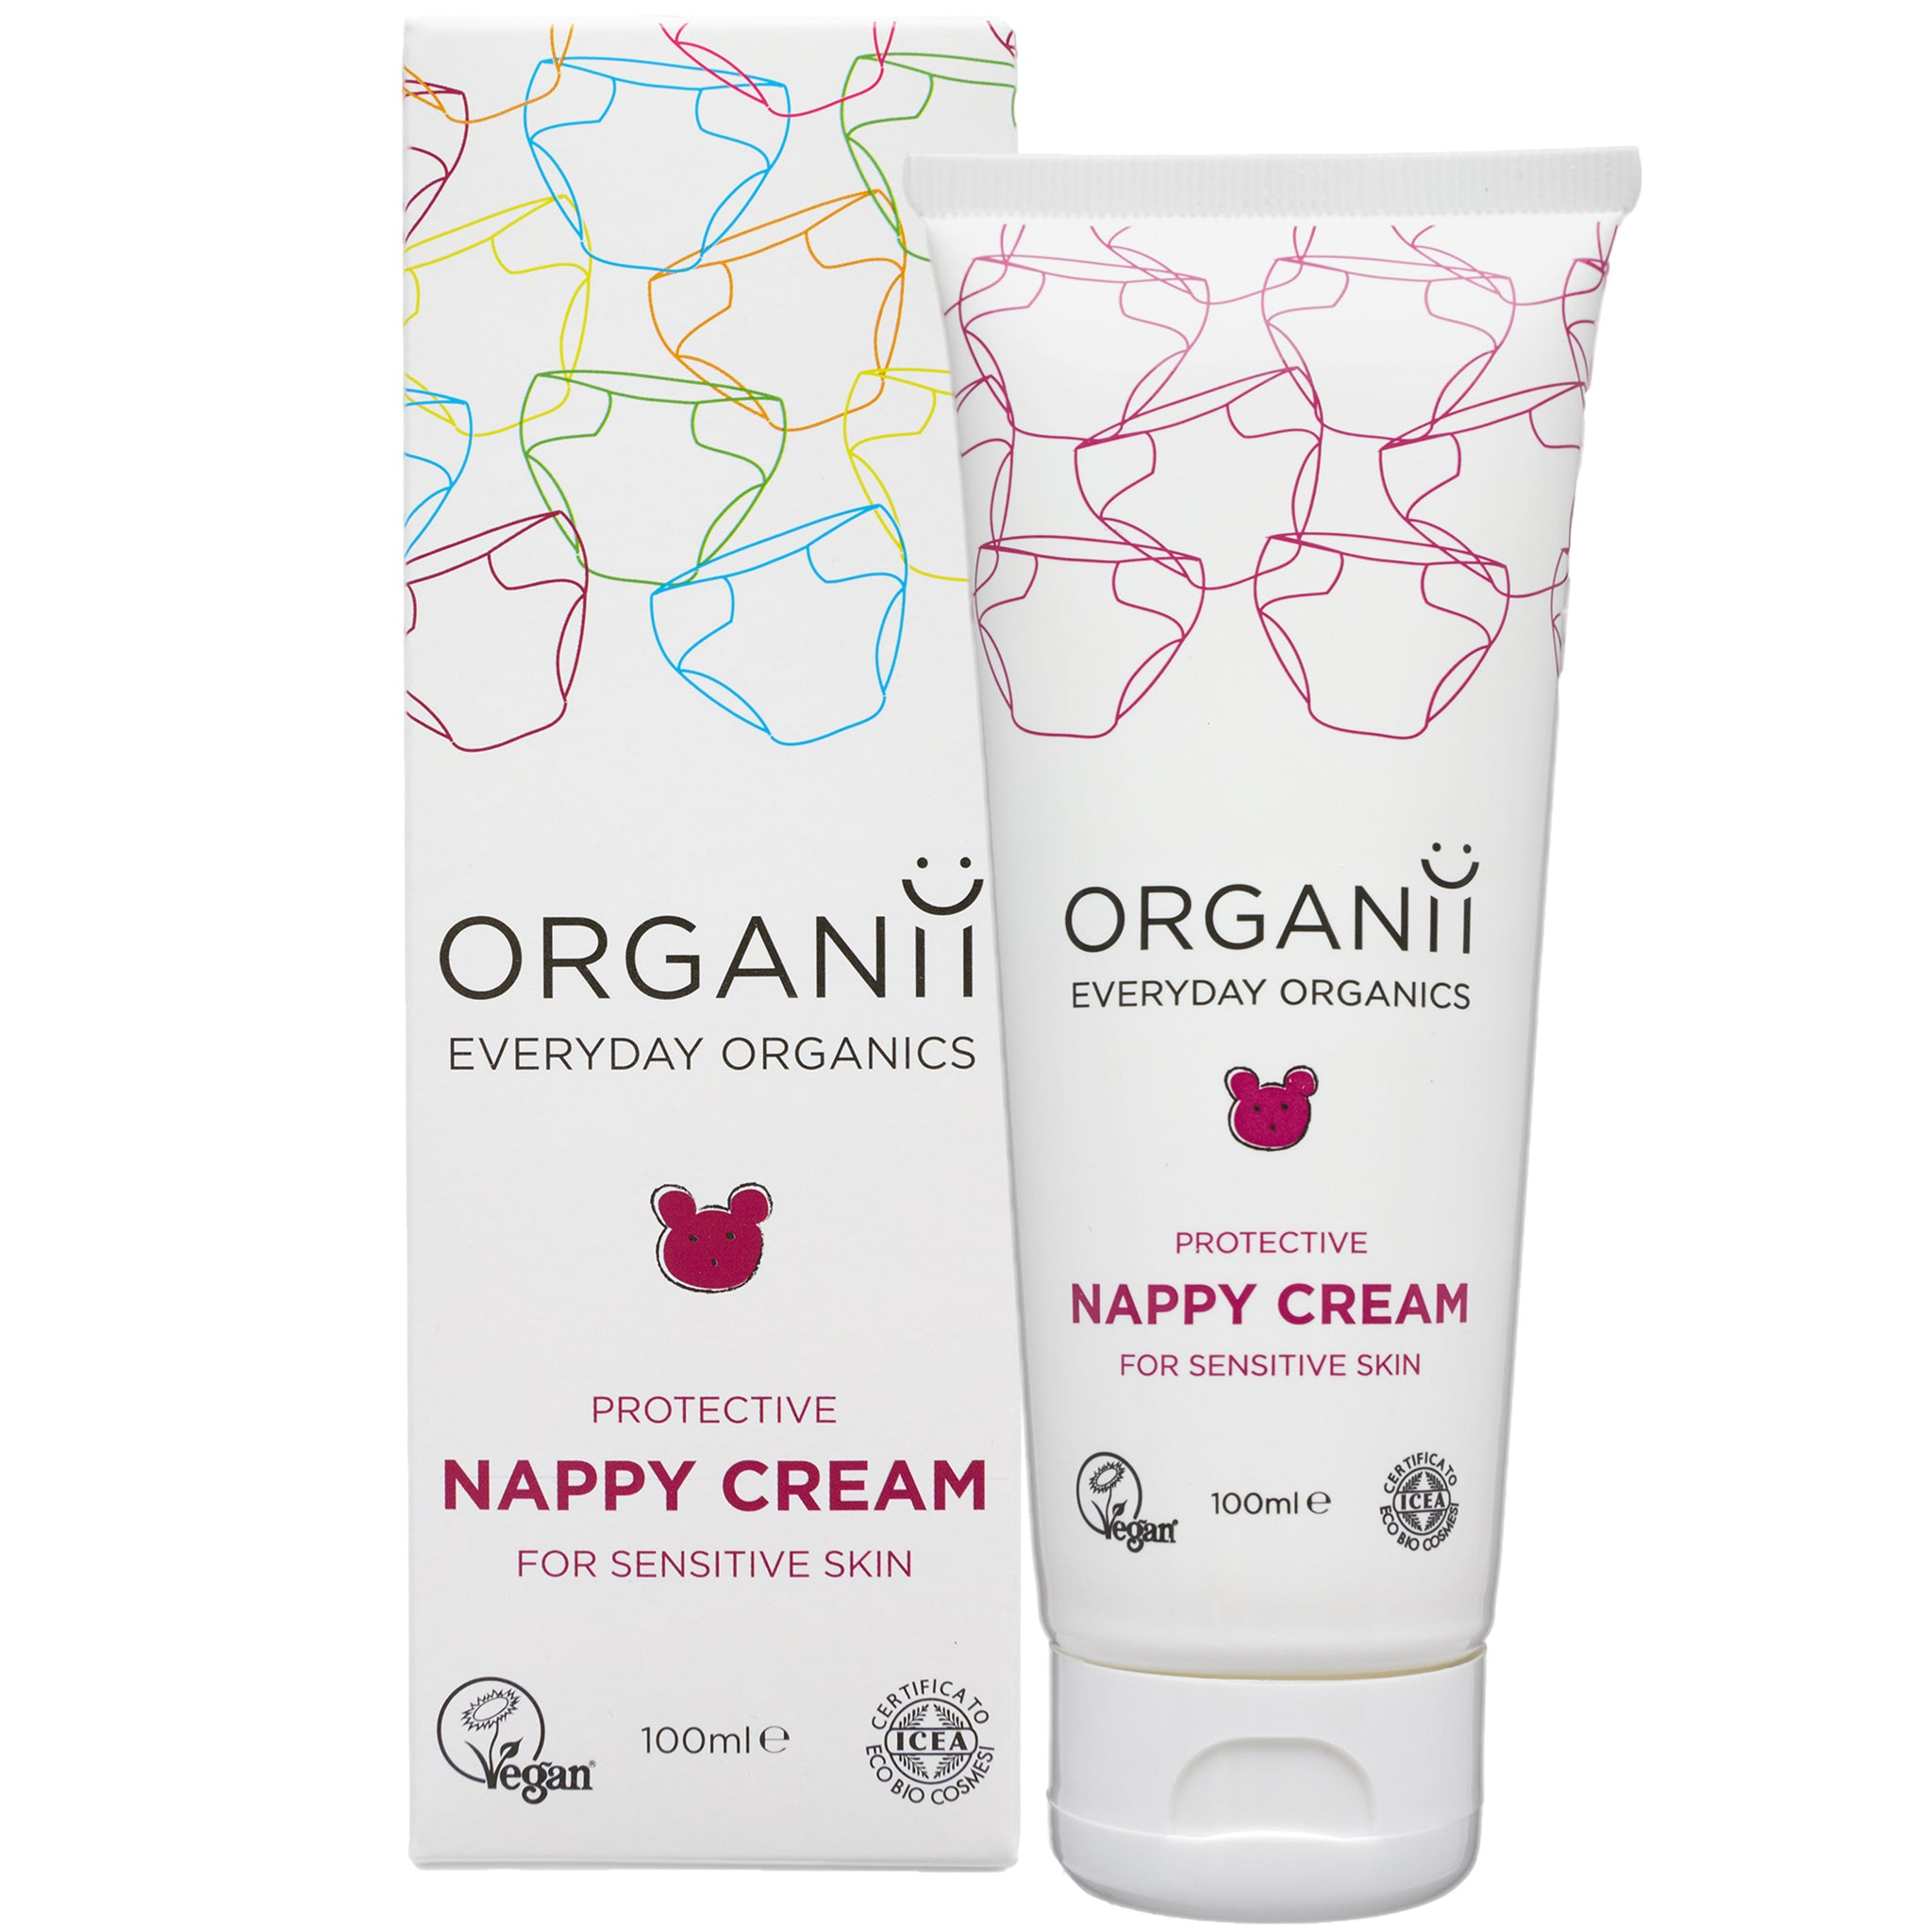 Protective Nappy Cream